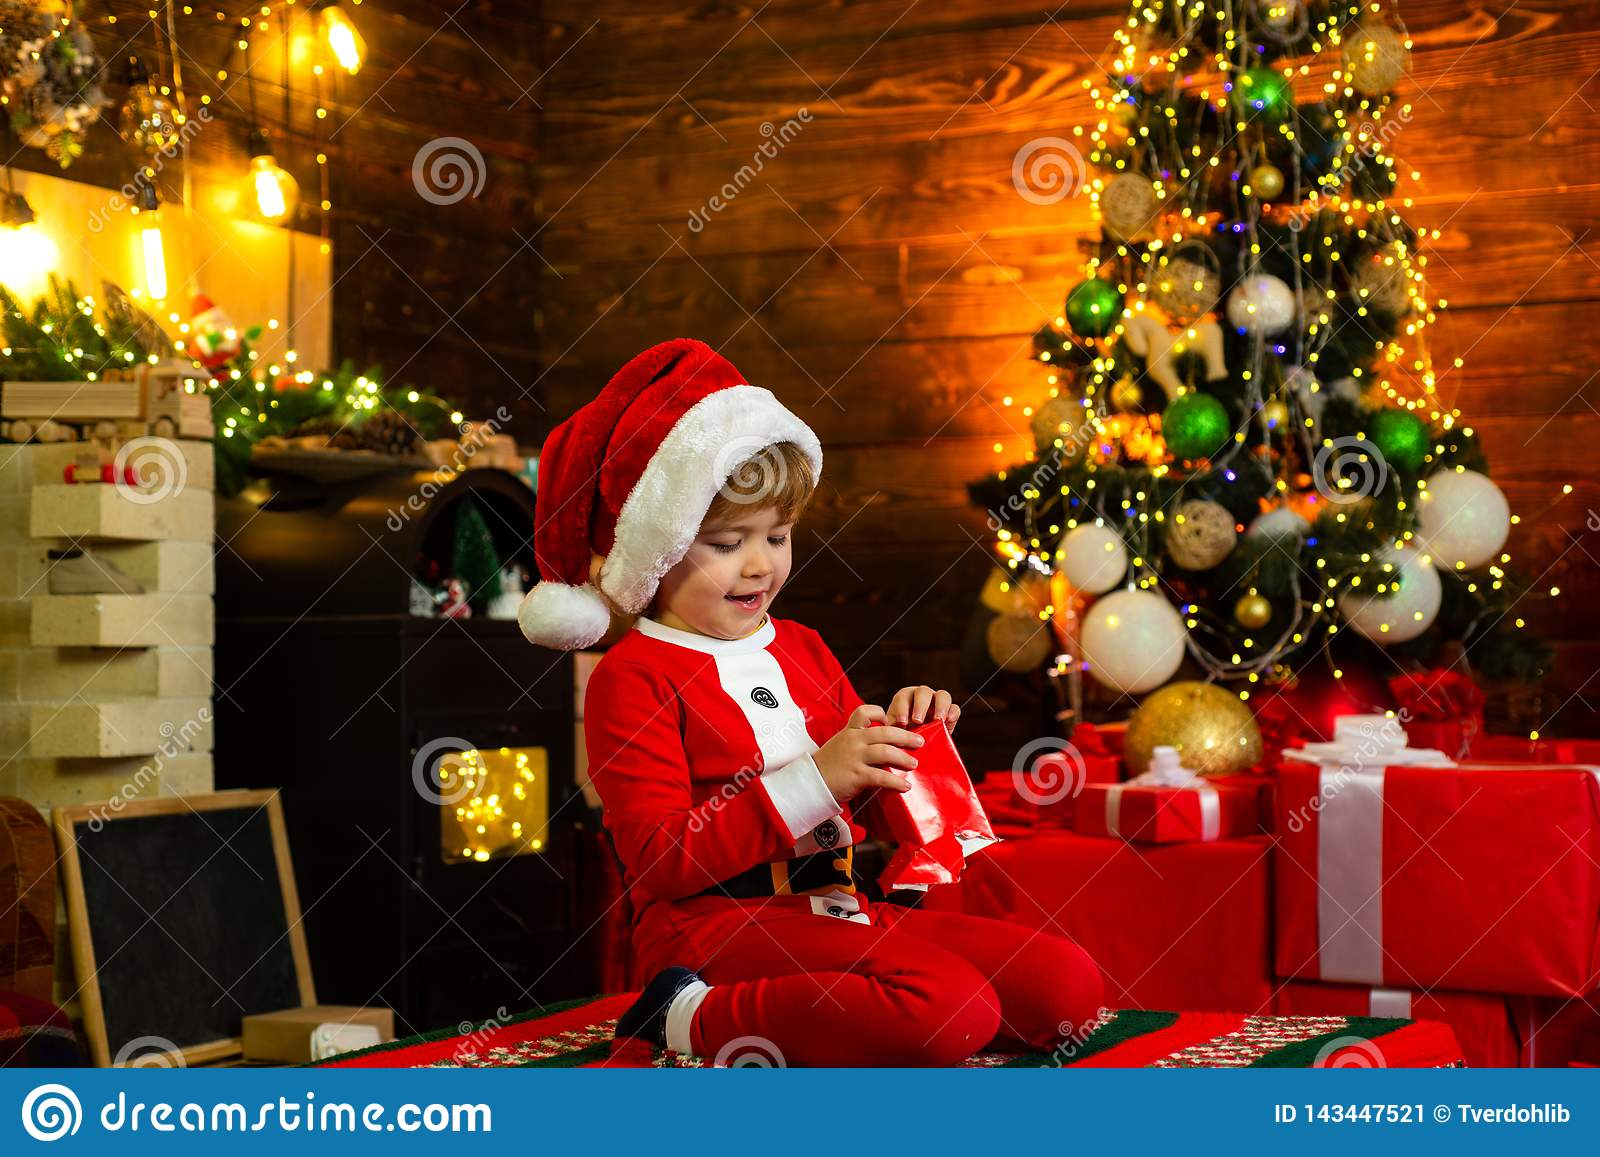 Christmas Kids. Happy little kid is wearing Santa clothes, playing with Christmas gift box. Fireplace background